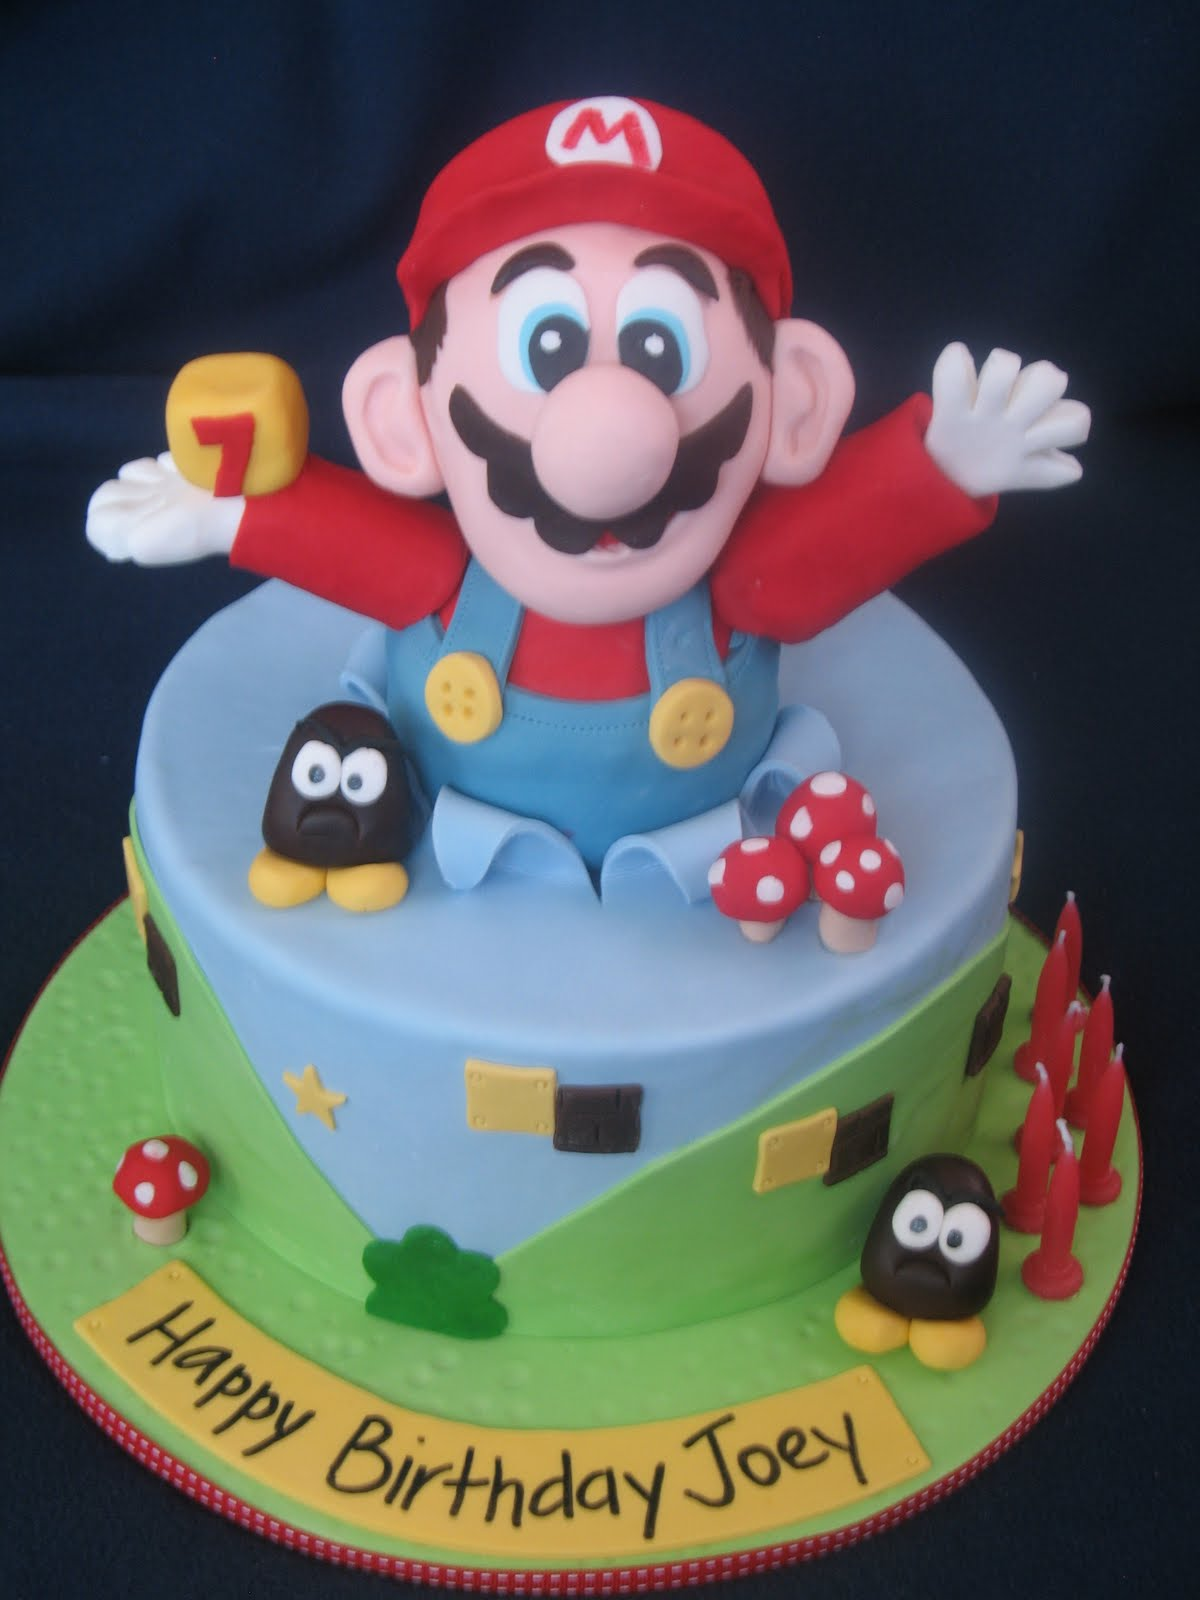 Creative Birthday Cakes For